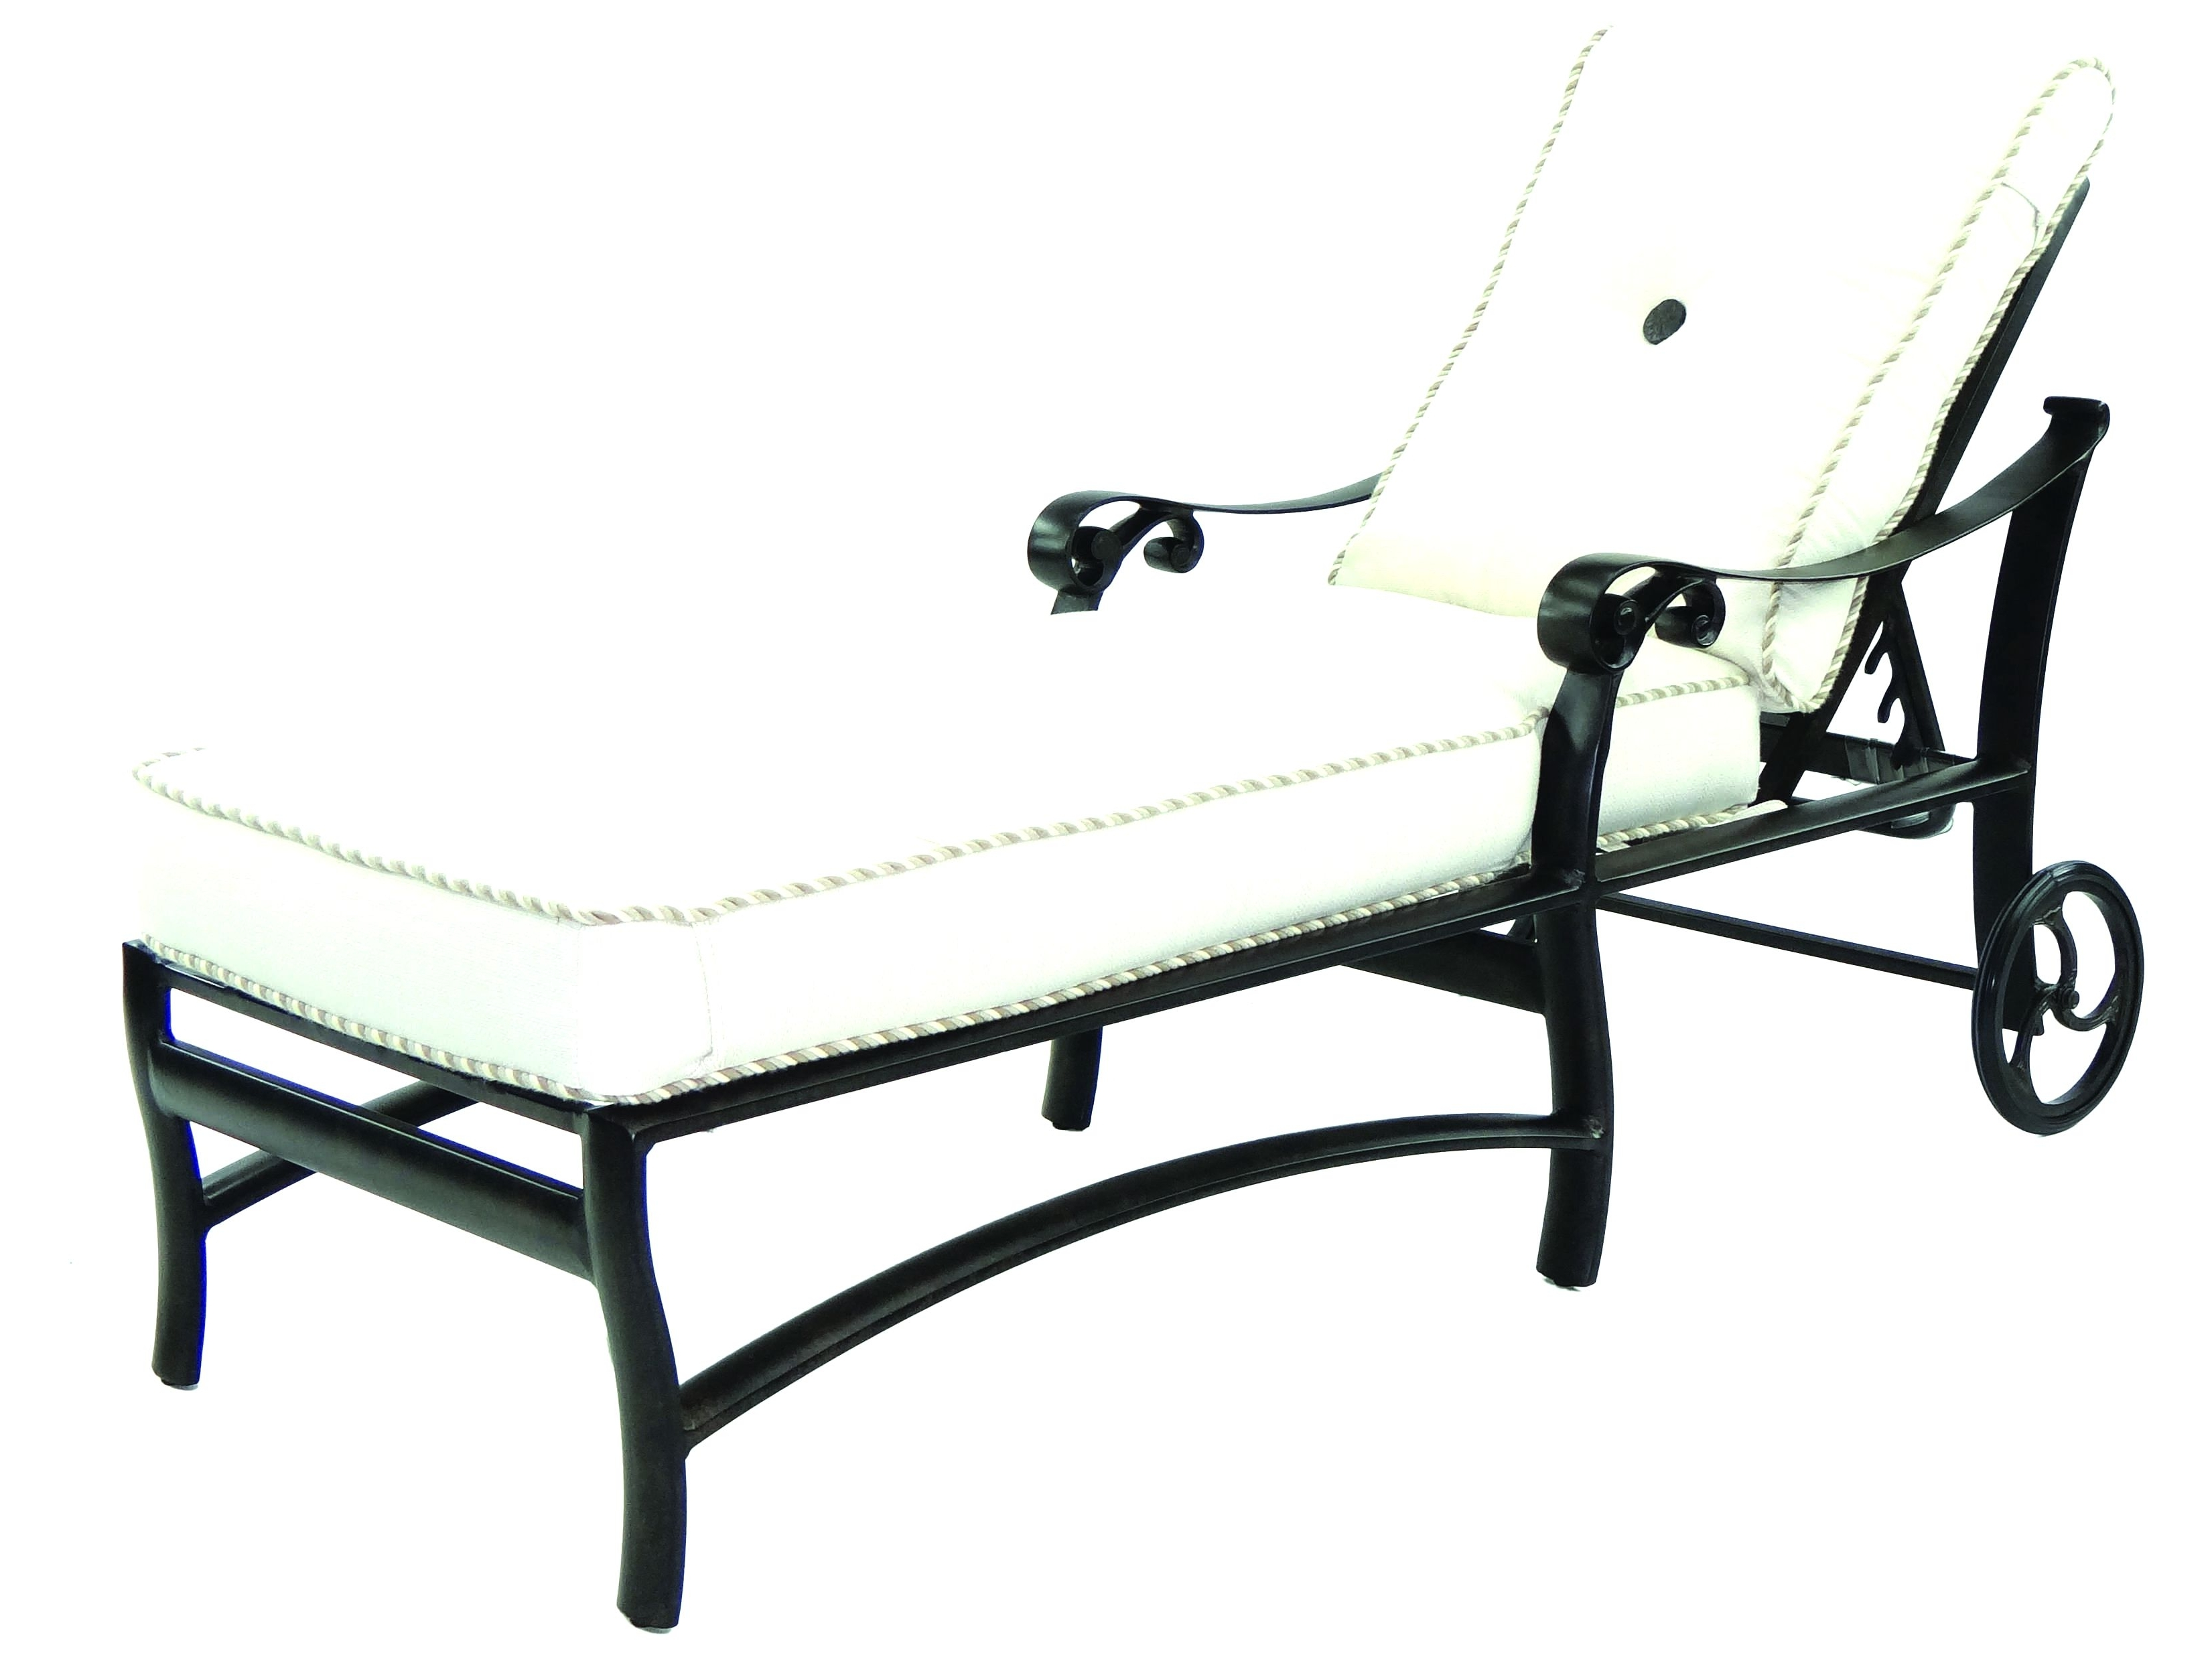 Cast Aluminum Chaise Lounges With Regard To Newest 25 Inspirational Cast Aluminum Chaise Lounge Scheme – Lounge Chair (View 13 of 15)